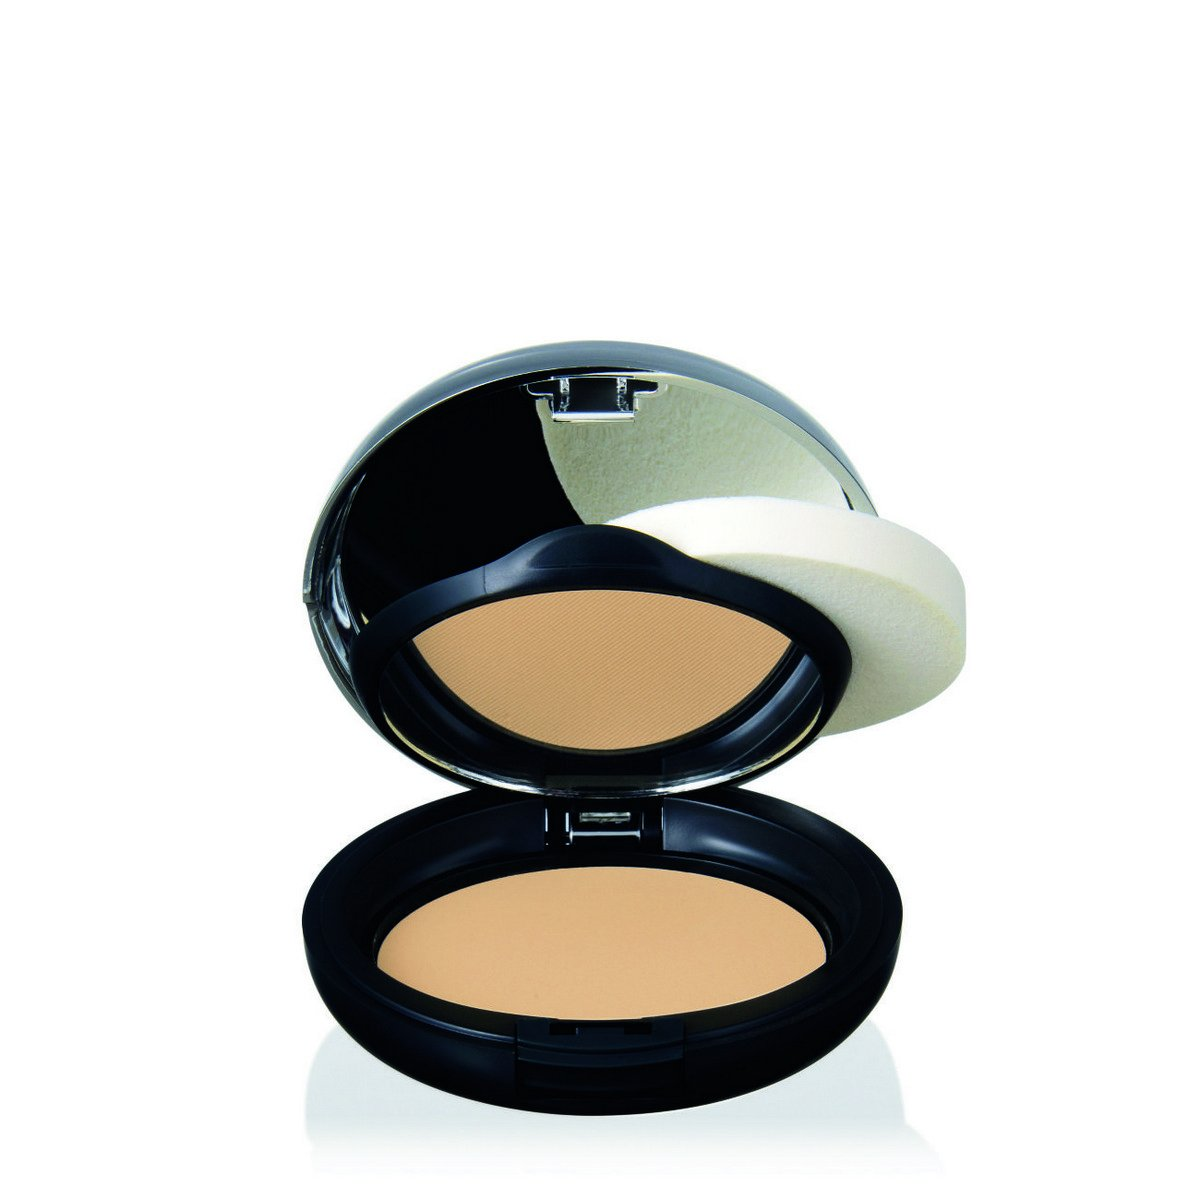 The Body Shop All In One Face Base, Shade 04